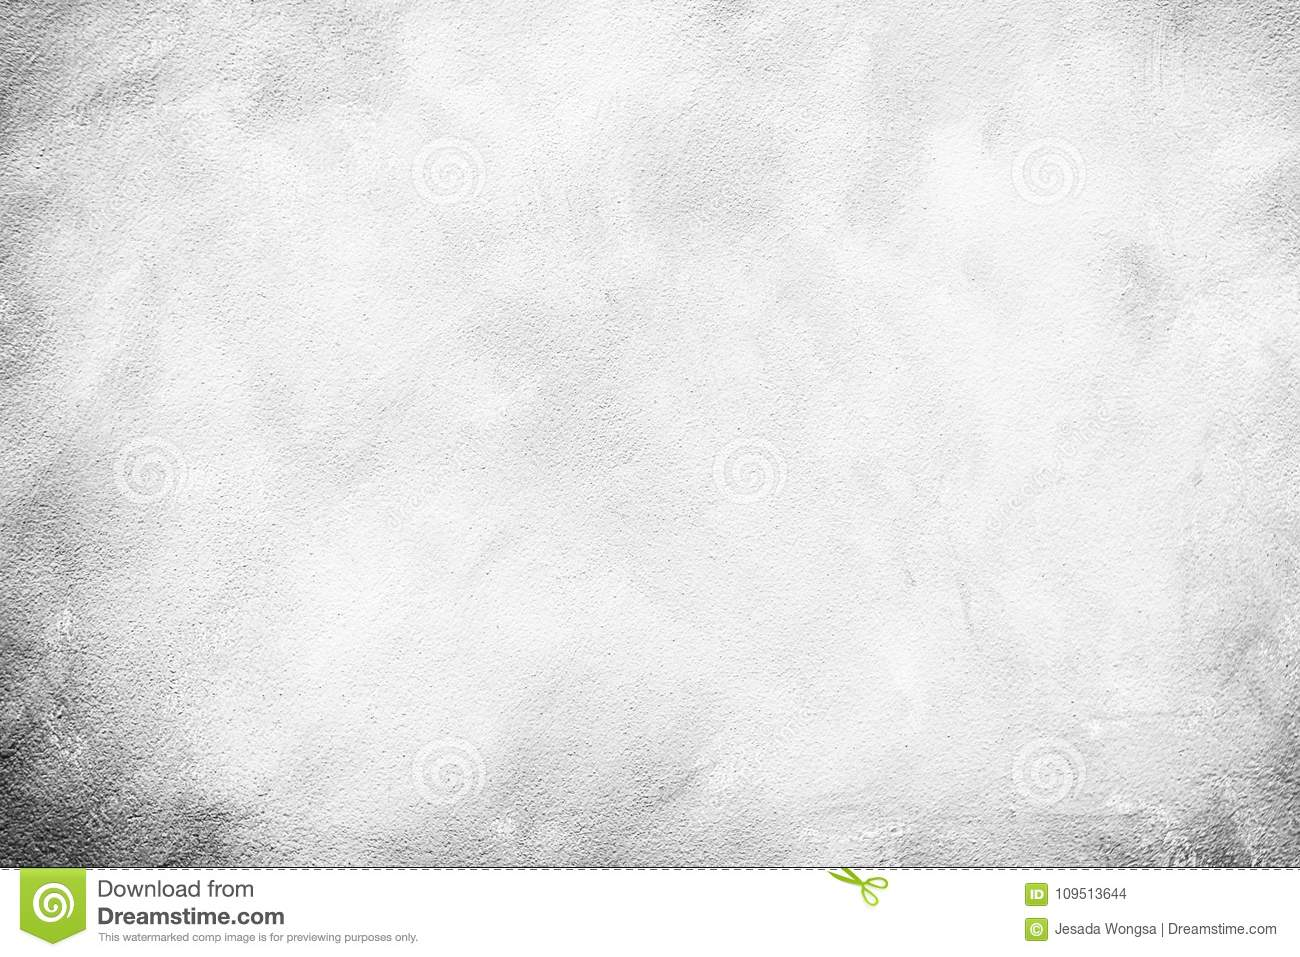 White Concrete Paint Wall Texture Backgroundflooring For Text Images Websites